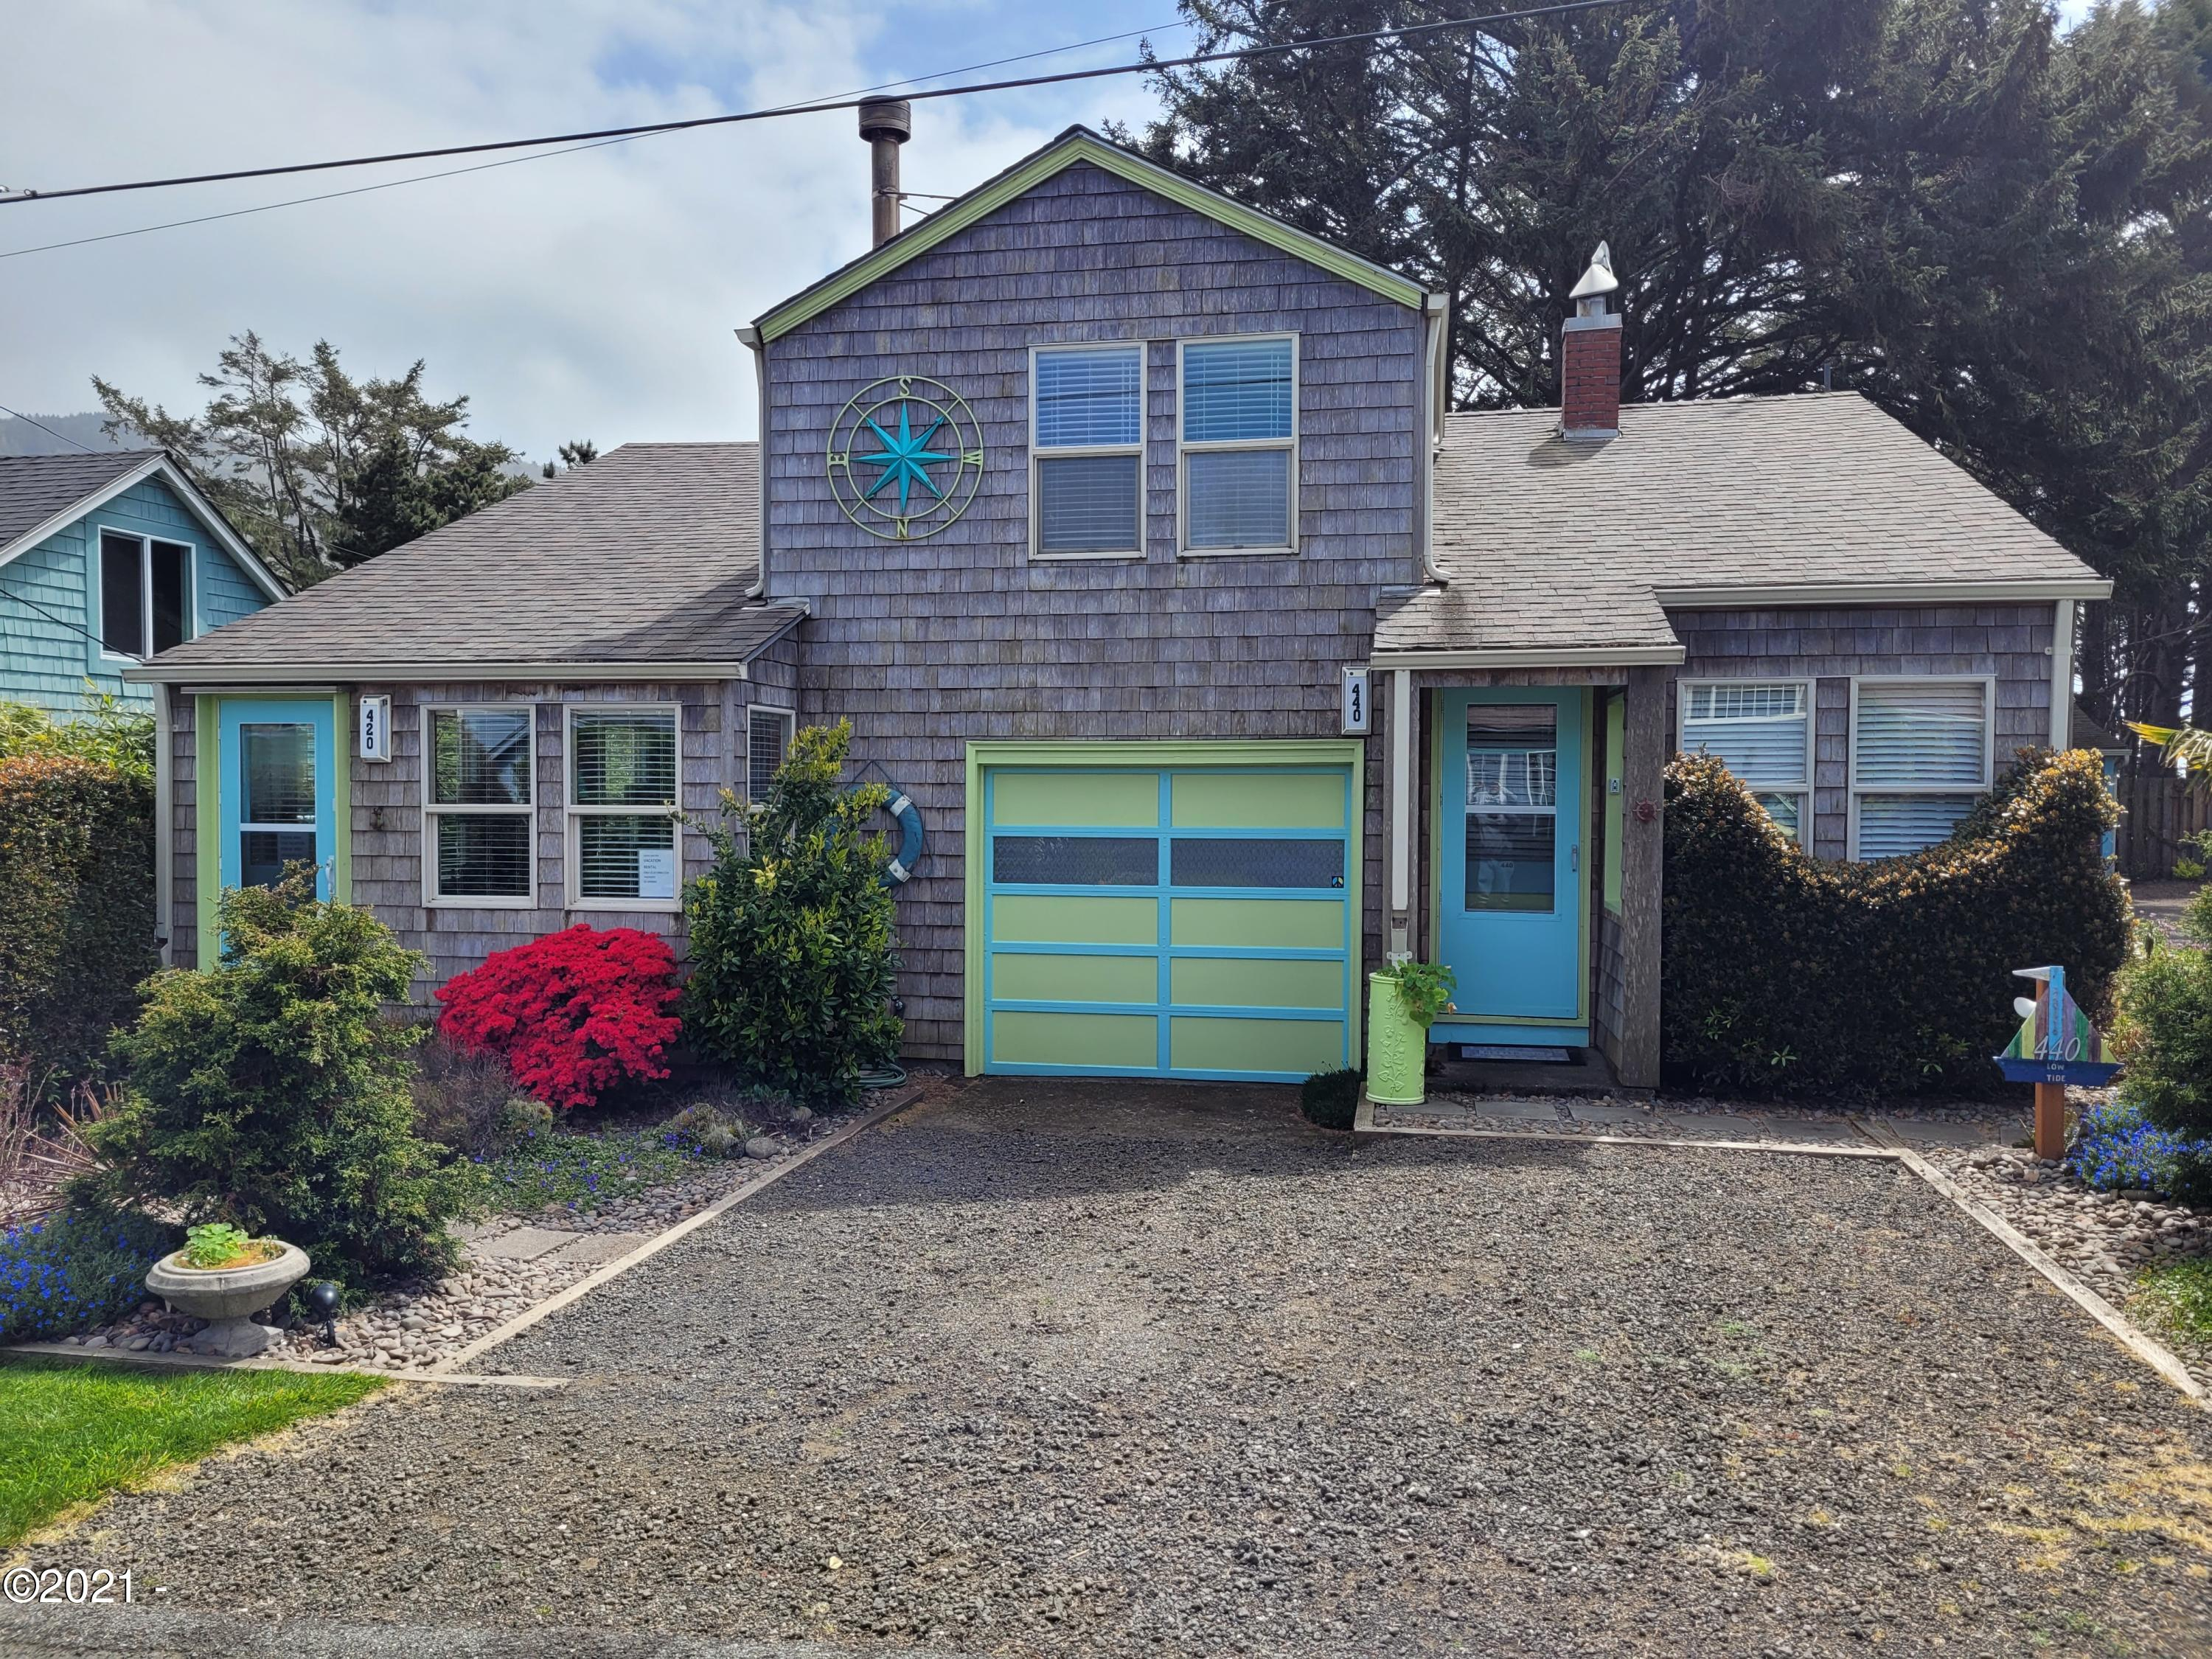 420-440 W 2nd St, Yachats, OR 97498 - Housefront